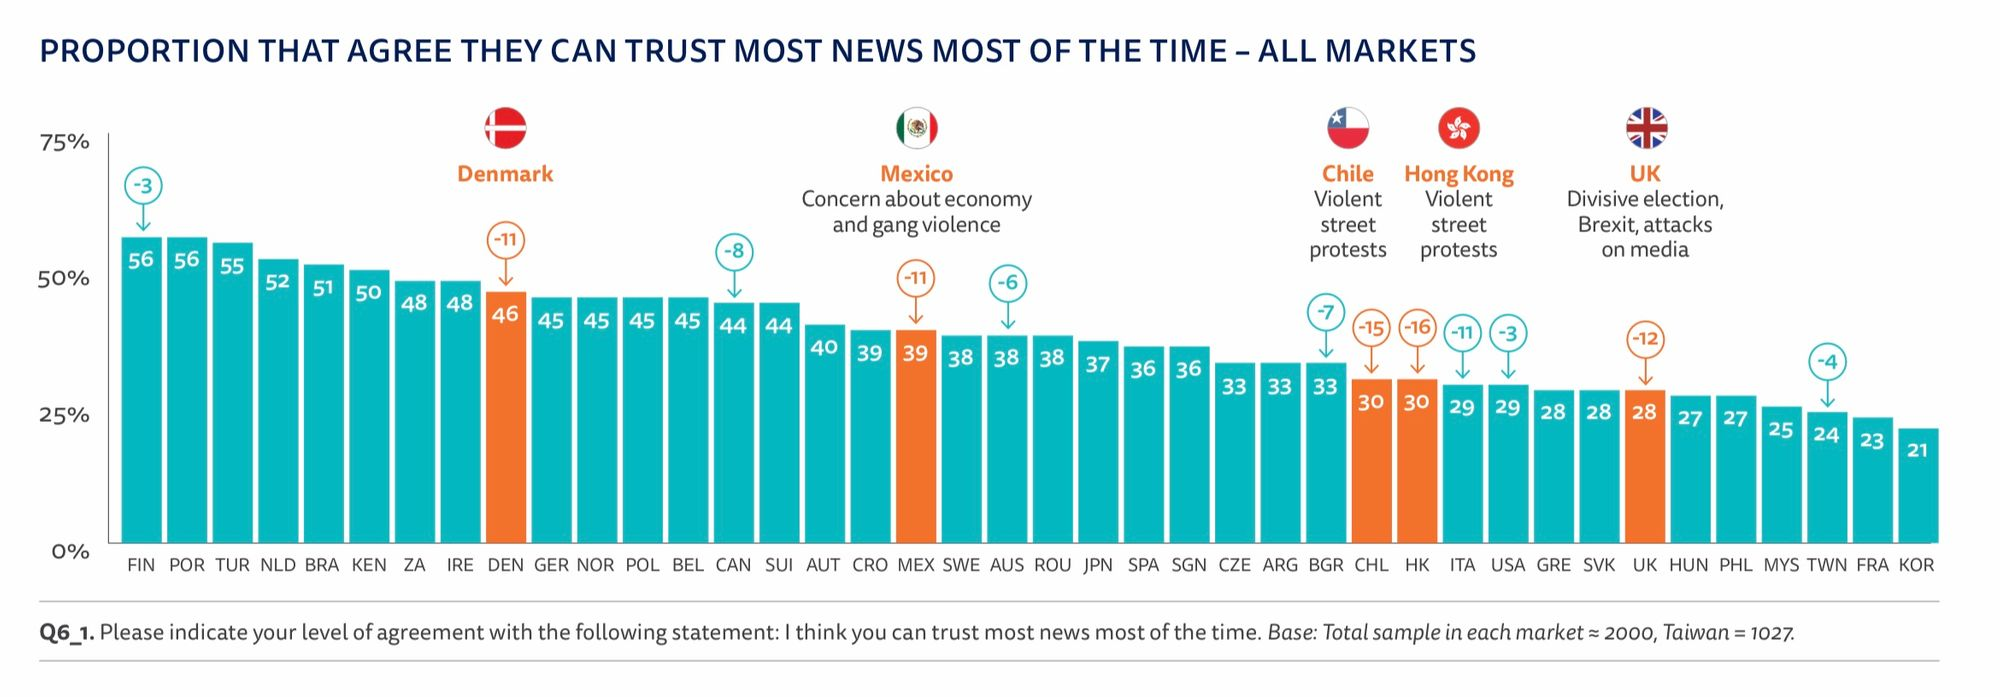 International trust in journalism from the Digital News Report 2020